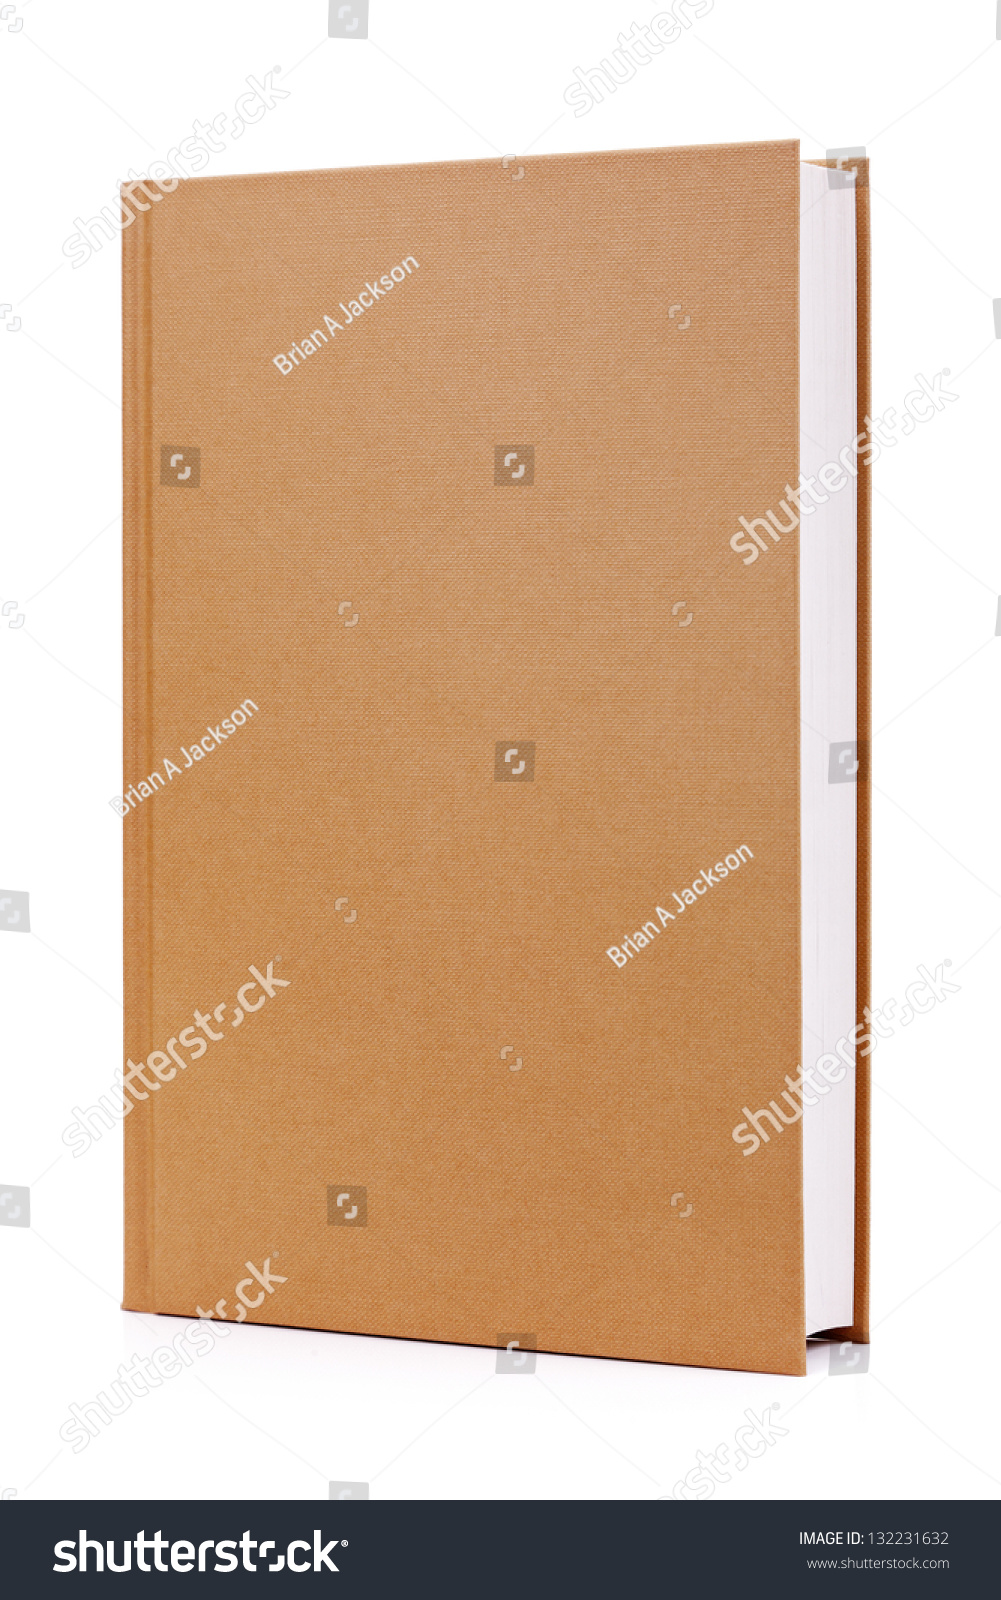 Hardcover Book Graphics : Blank brown hardback book cover ready stock photo